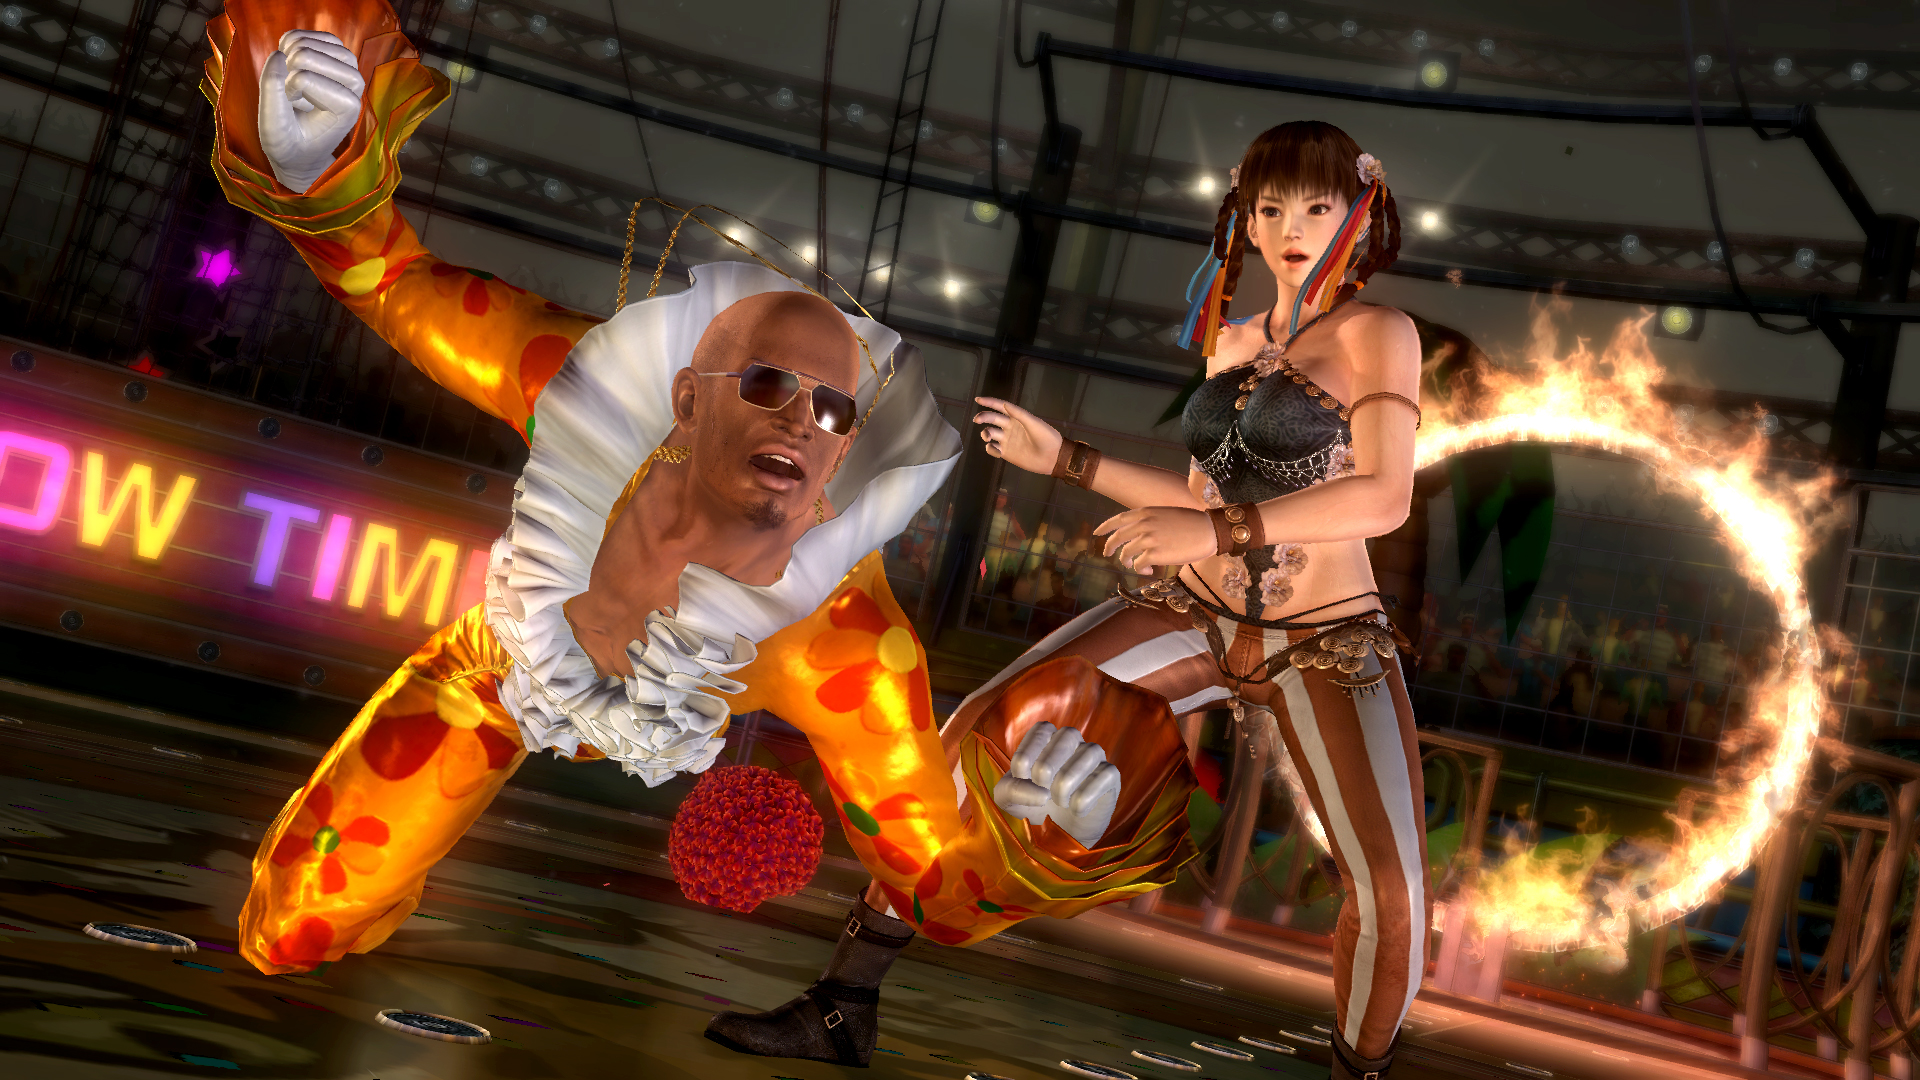 3d Moving Animation Wallpaper Doa5 The Show Lei Fang Vs Zack Trailer Page 6 Free